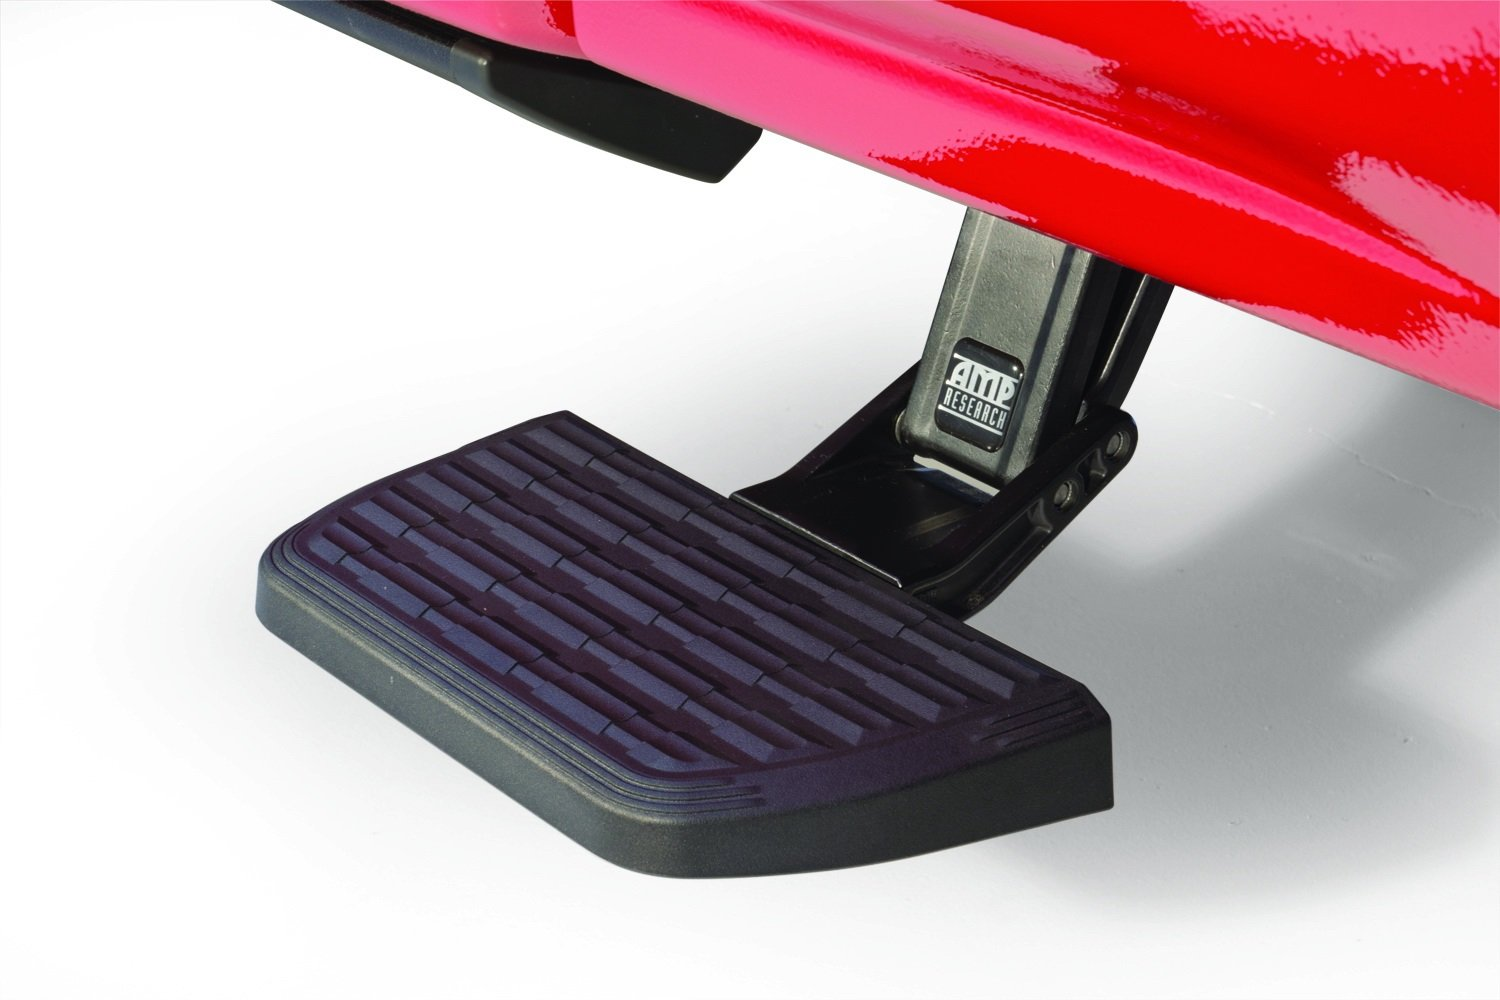 2015-2019 Silverado /& Sierra 2500//3500 AMP Research 75407-01A BedStep2 Retractable Truck Bed Side Step for 2014-2019 Silverado /& Sierra 1500 All Beds